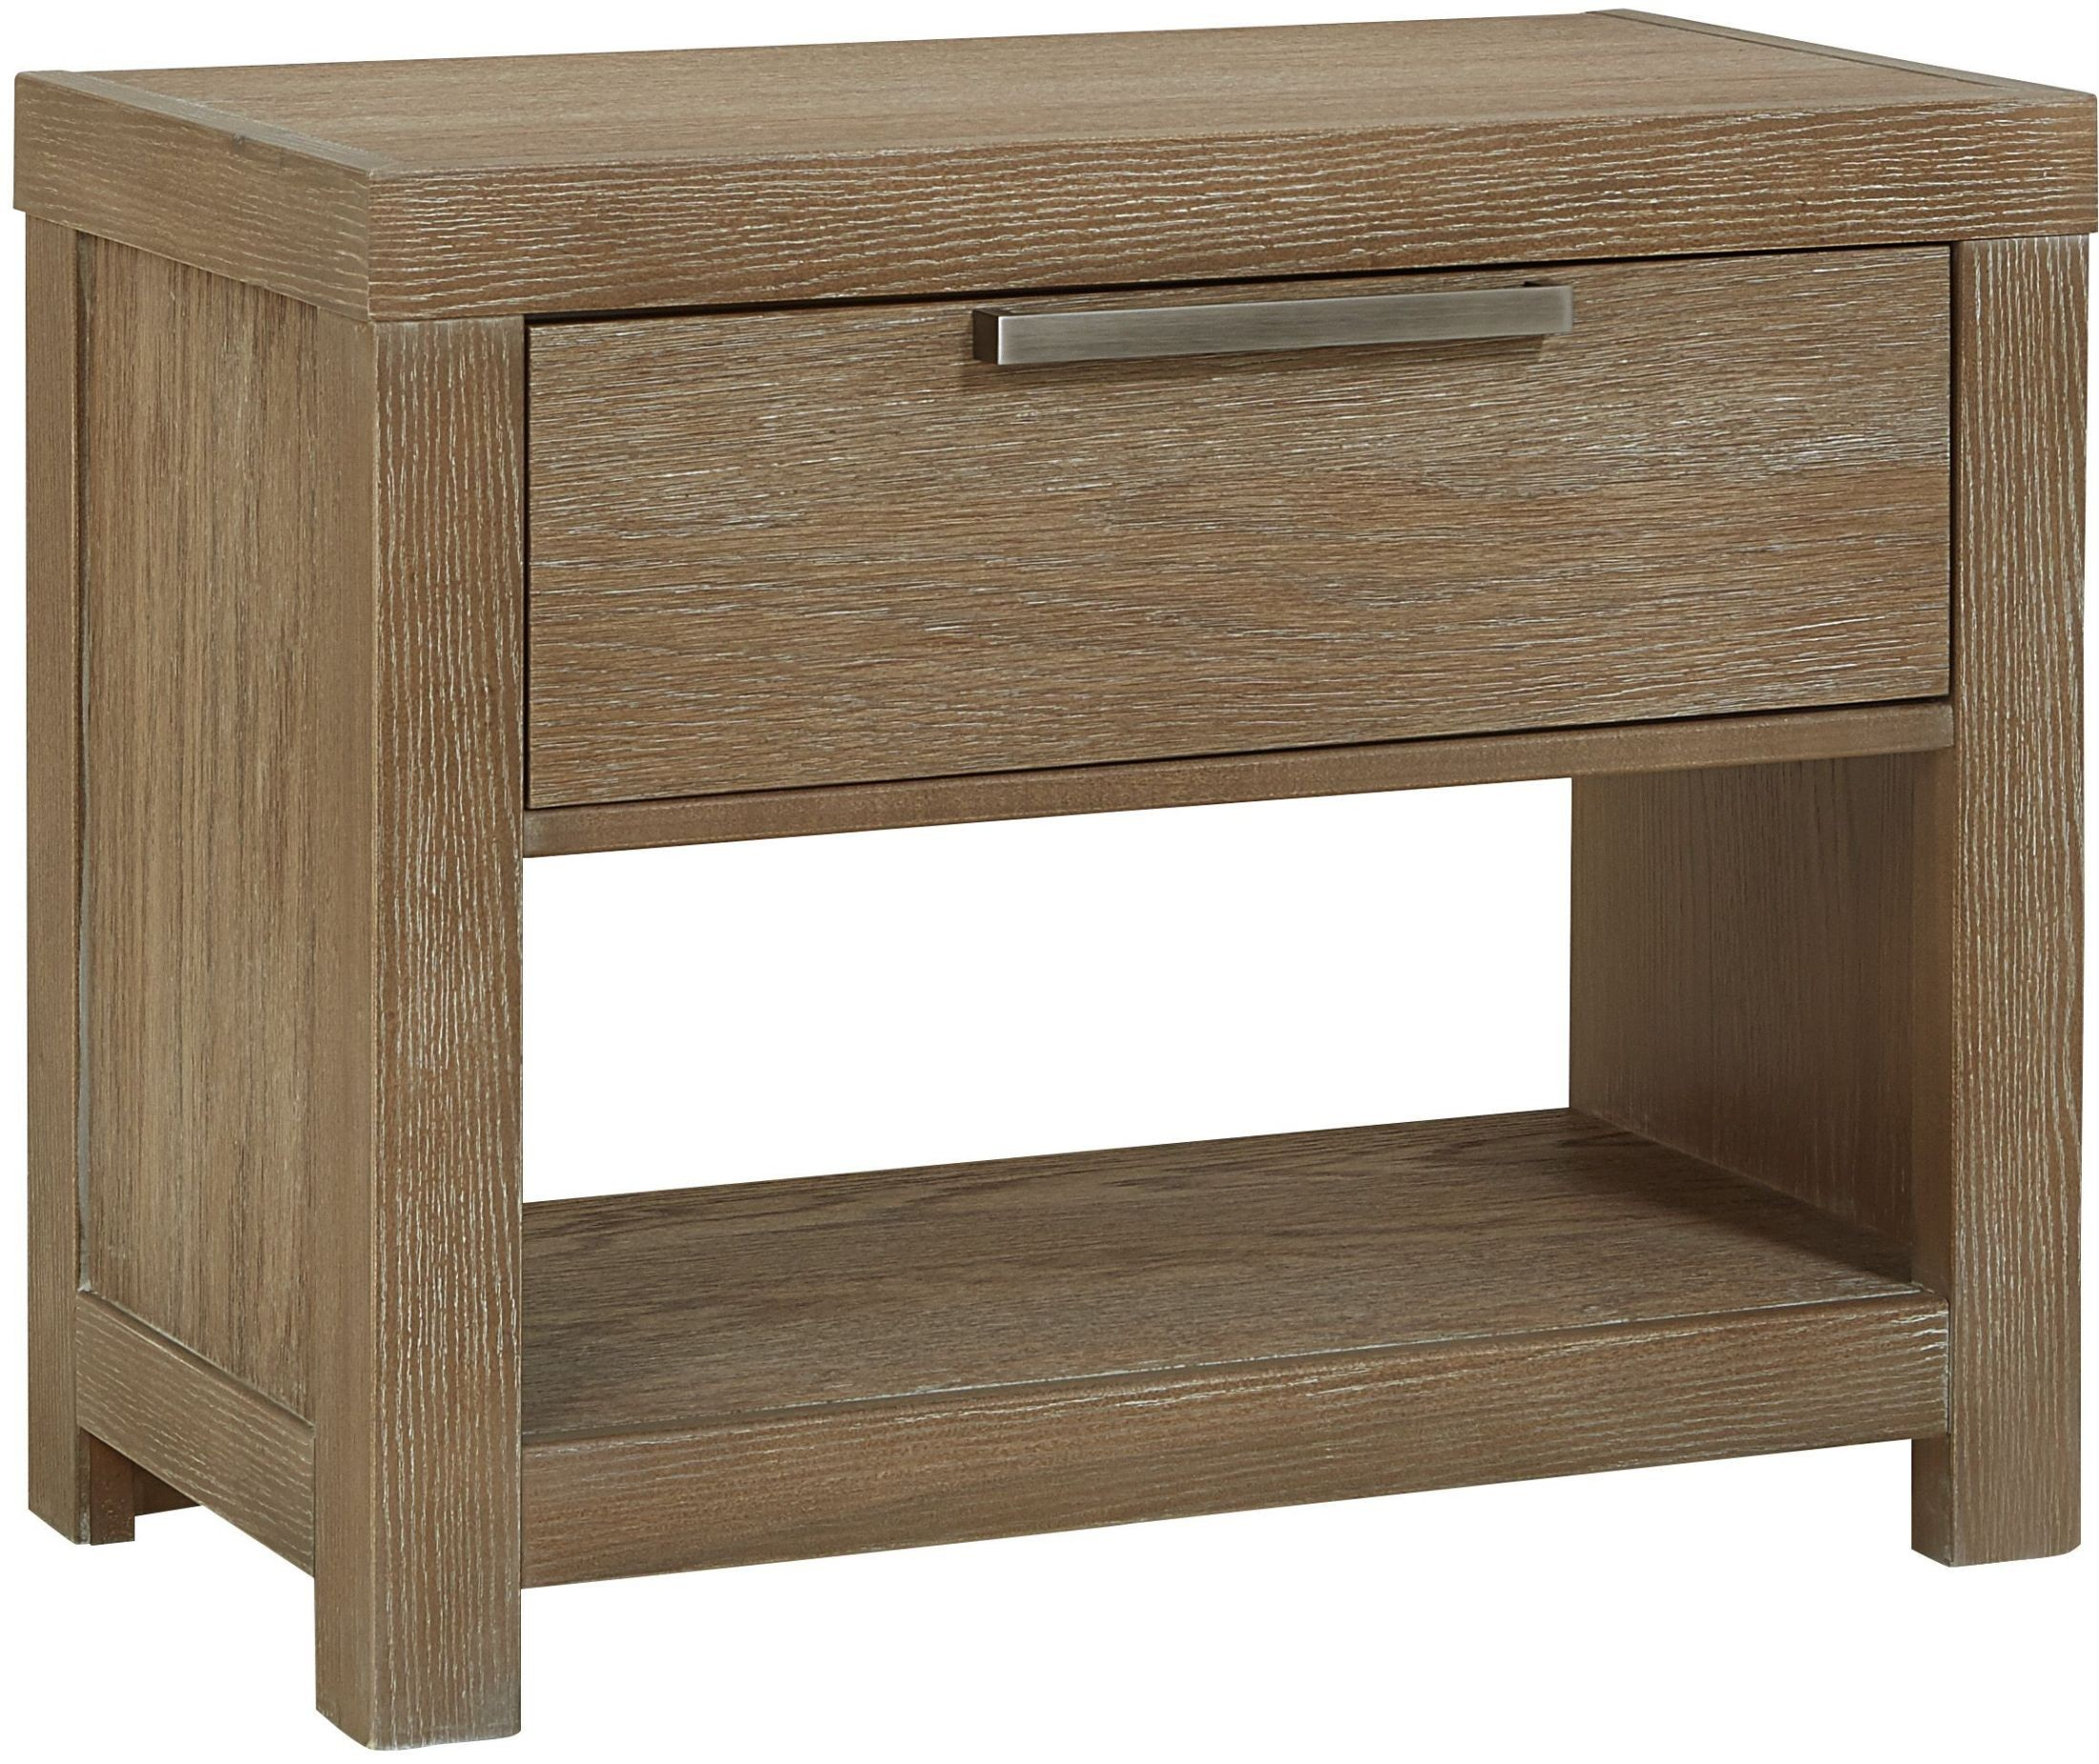 American Modern Natural 1 Drawer Night Table From Virginia